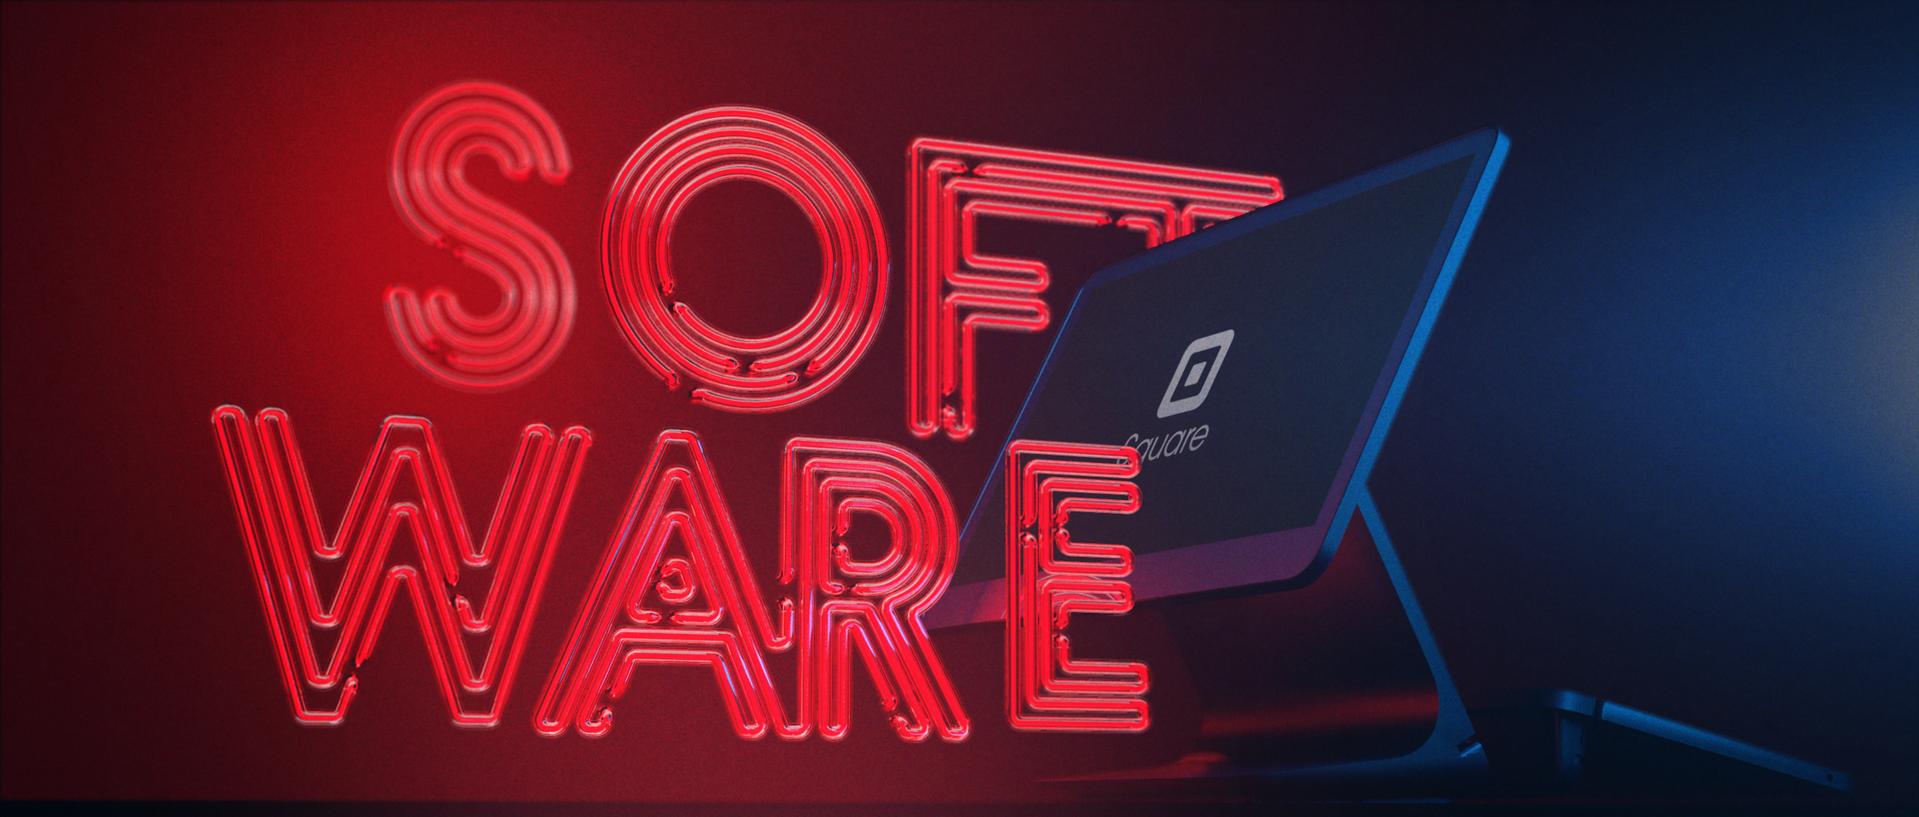 SQUARE_SOFTWARE_wproduct_2_00000.png